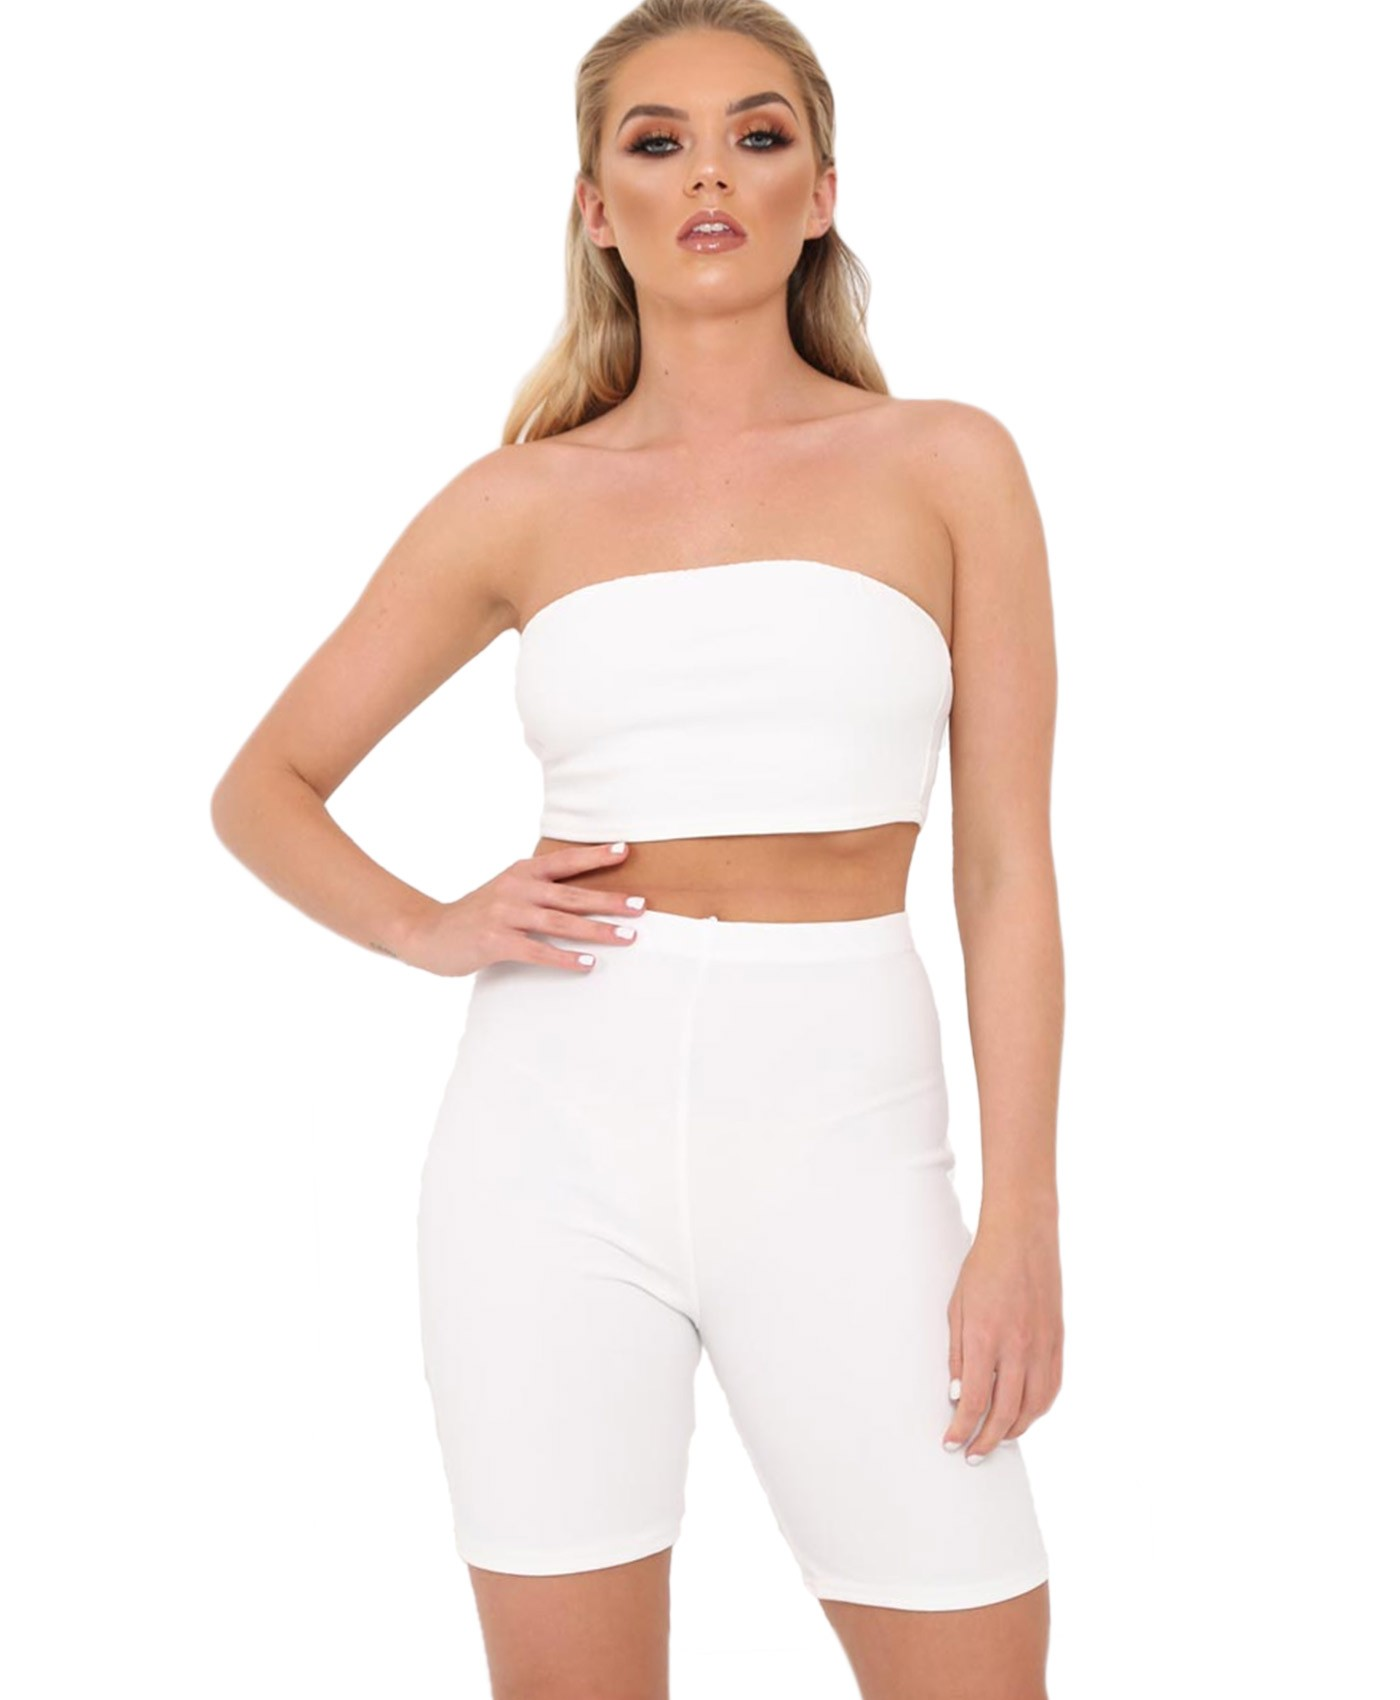 White-Cycling-Shorts-Boobtube-2-Peice-Co-Ord-Set-1